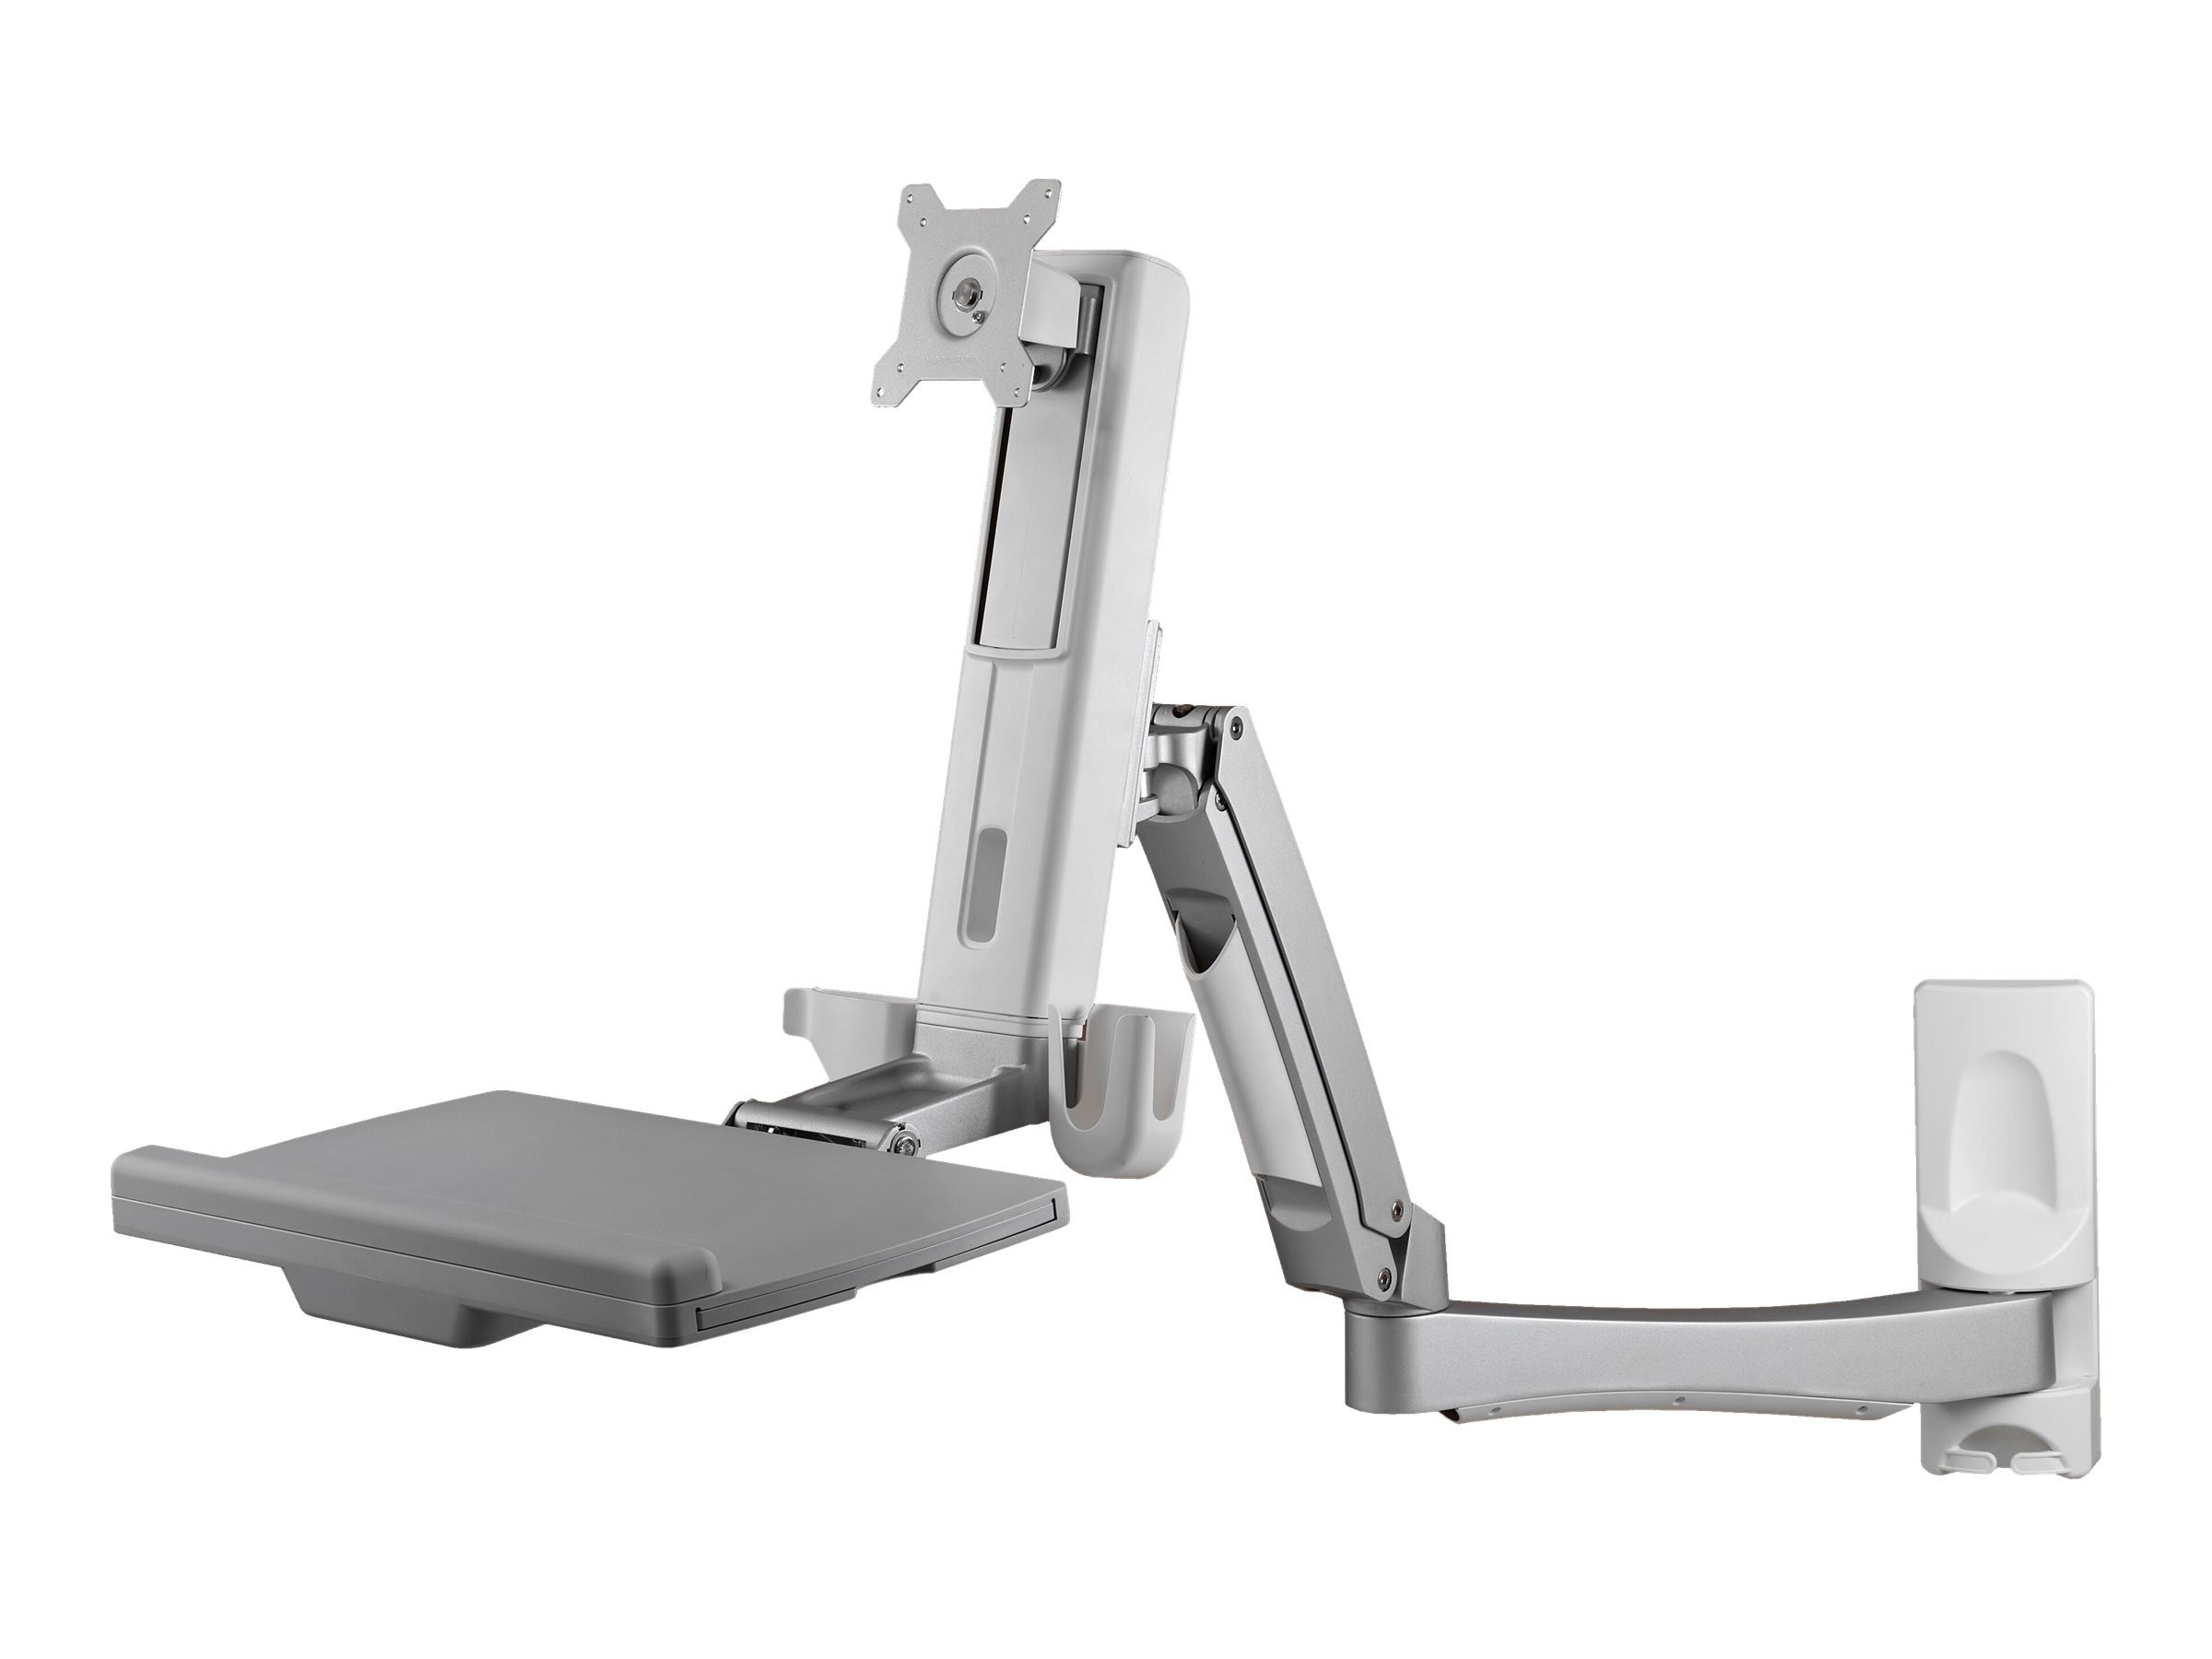 Atdec Wall Mounted Sit-to-stand Workstation